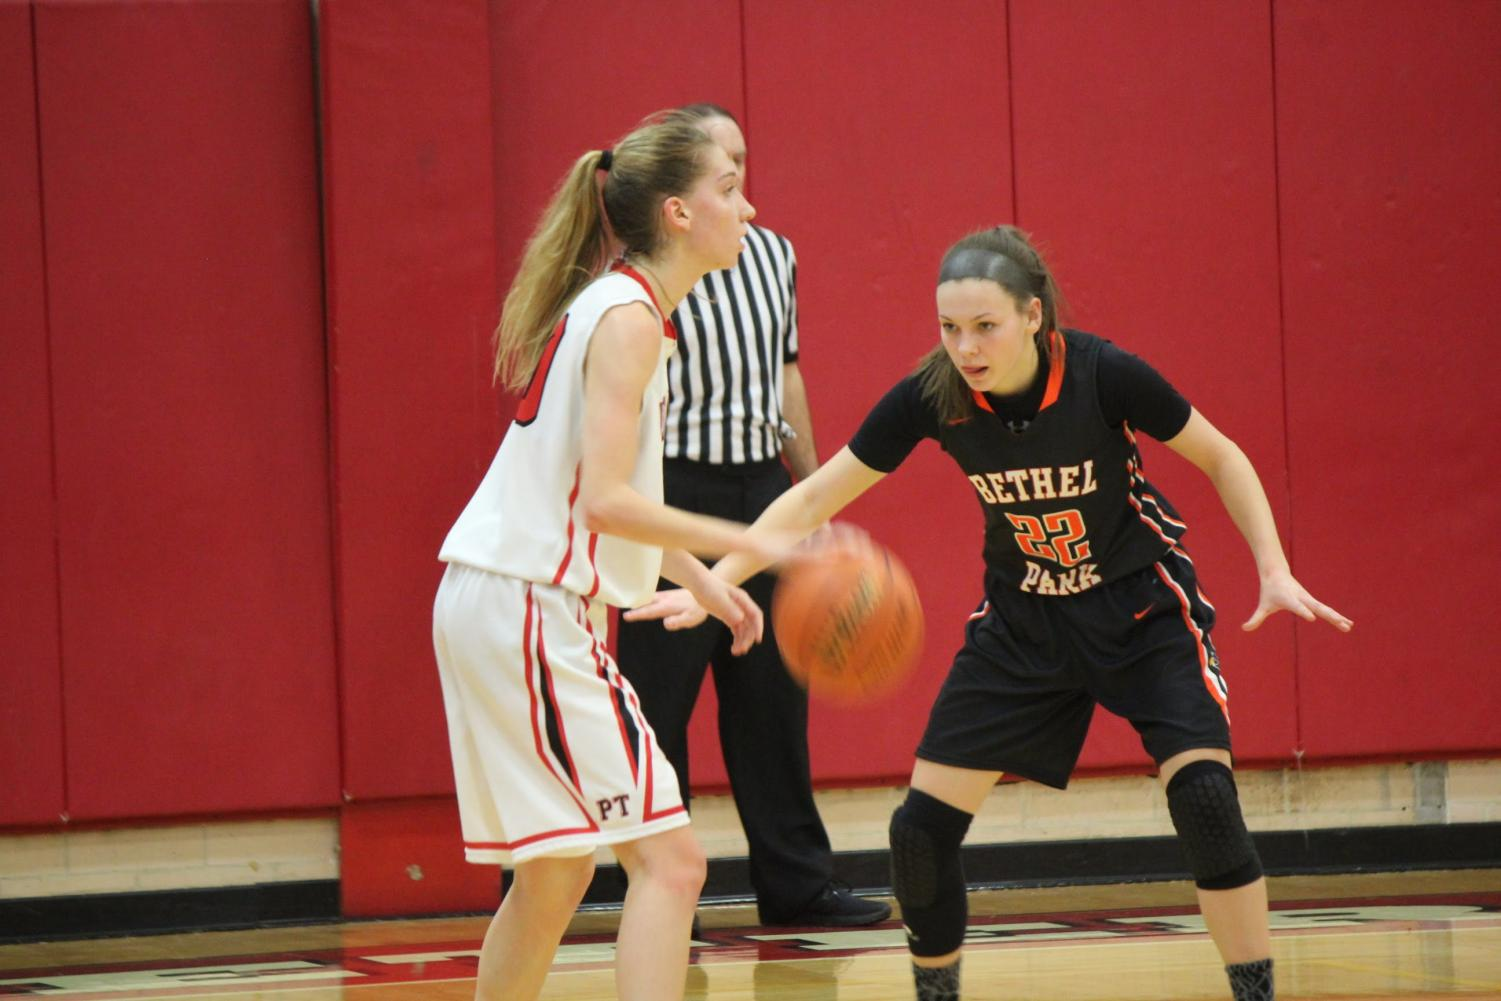 Olivia Westphal defends the ball during the Lady Hawks' game vs. Peters on Jan. 22.